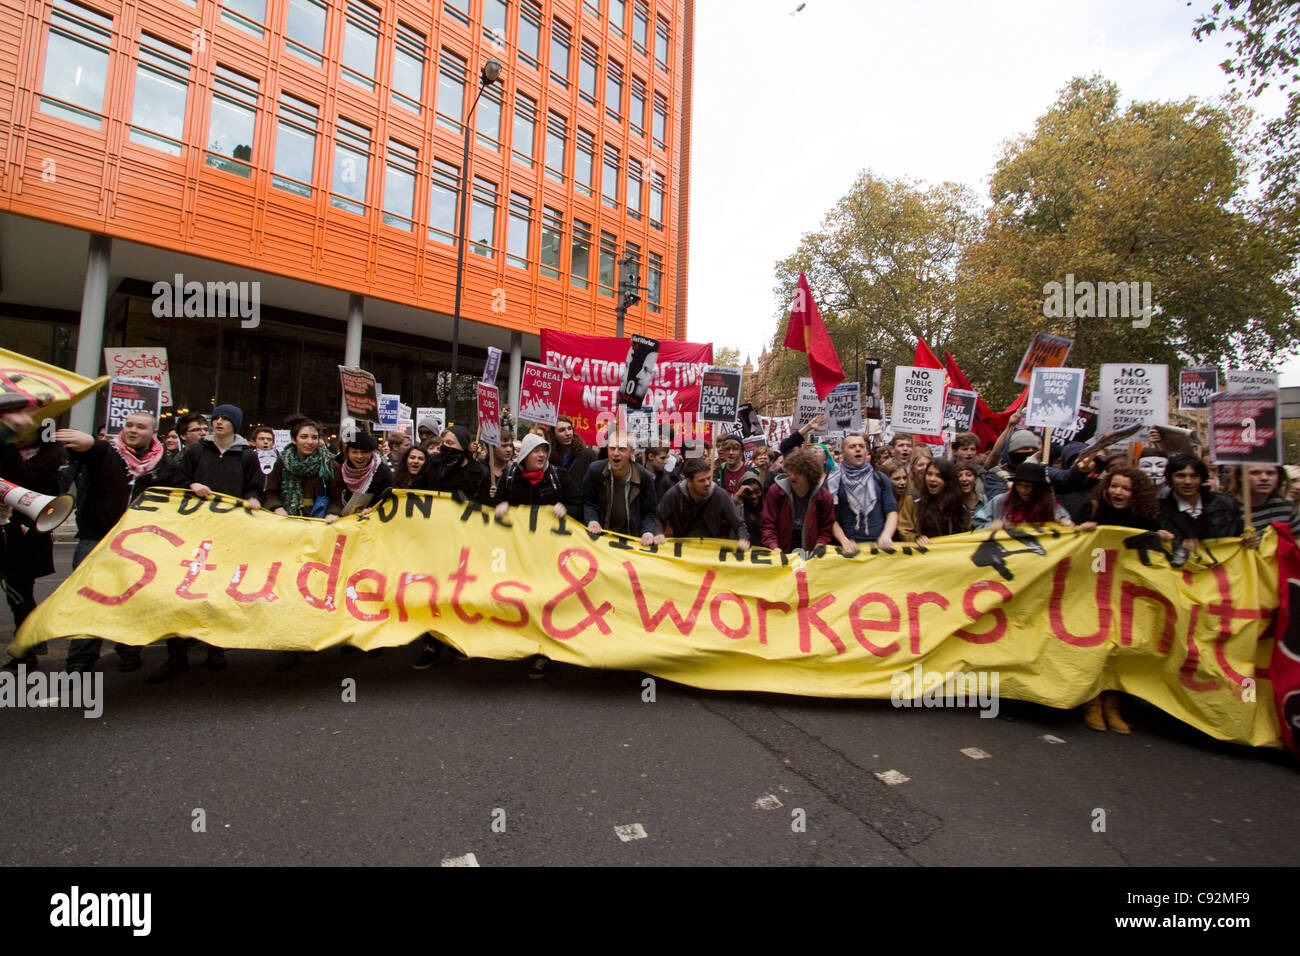 students protest in central London UK, about cuts to public spending and increase in tuition fees - Stock Image